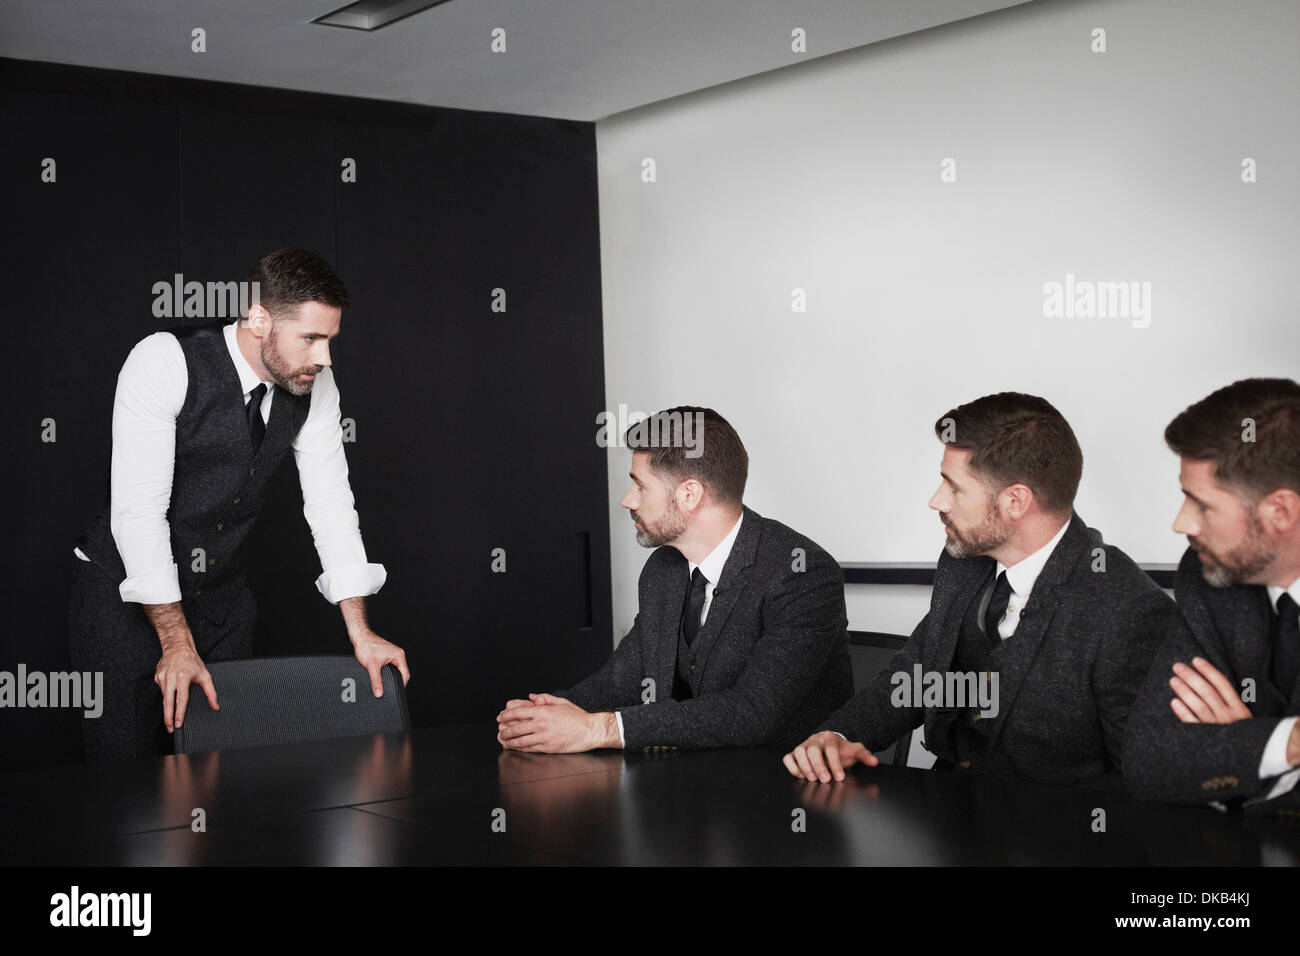 Businessmen in meeting, multiple image - Stock Image